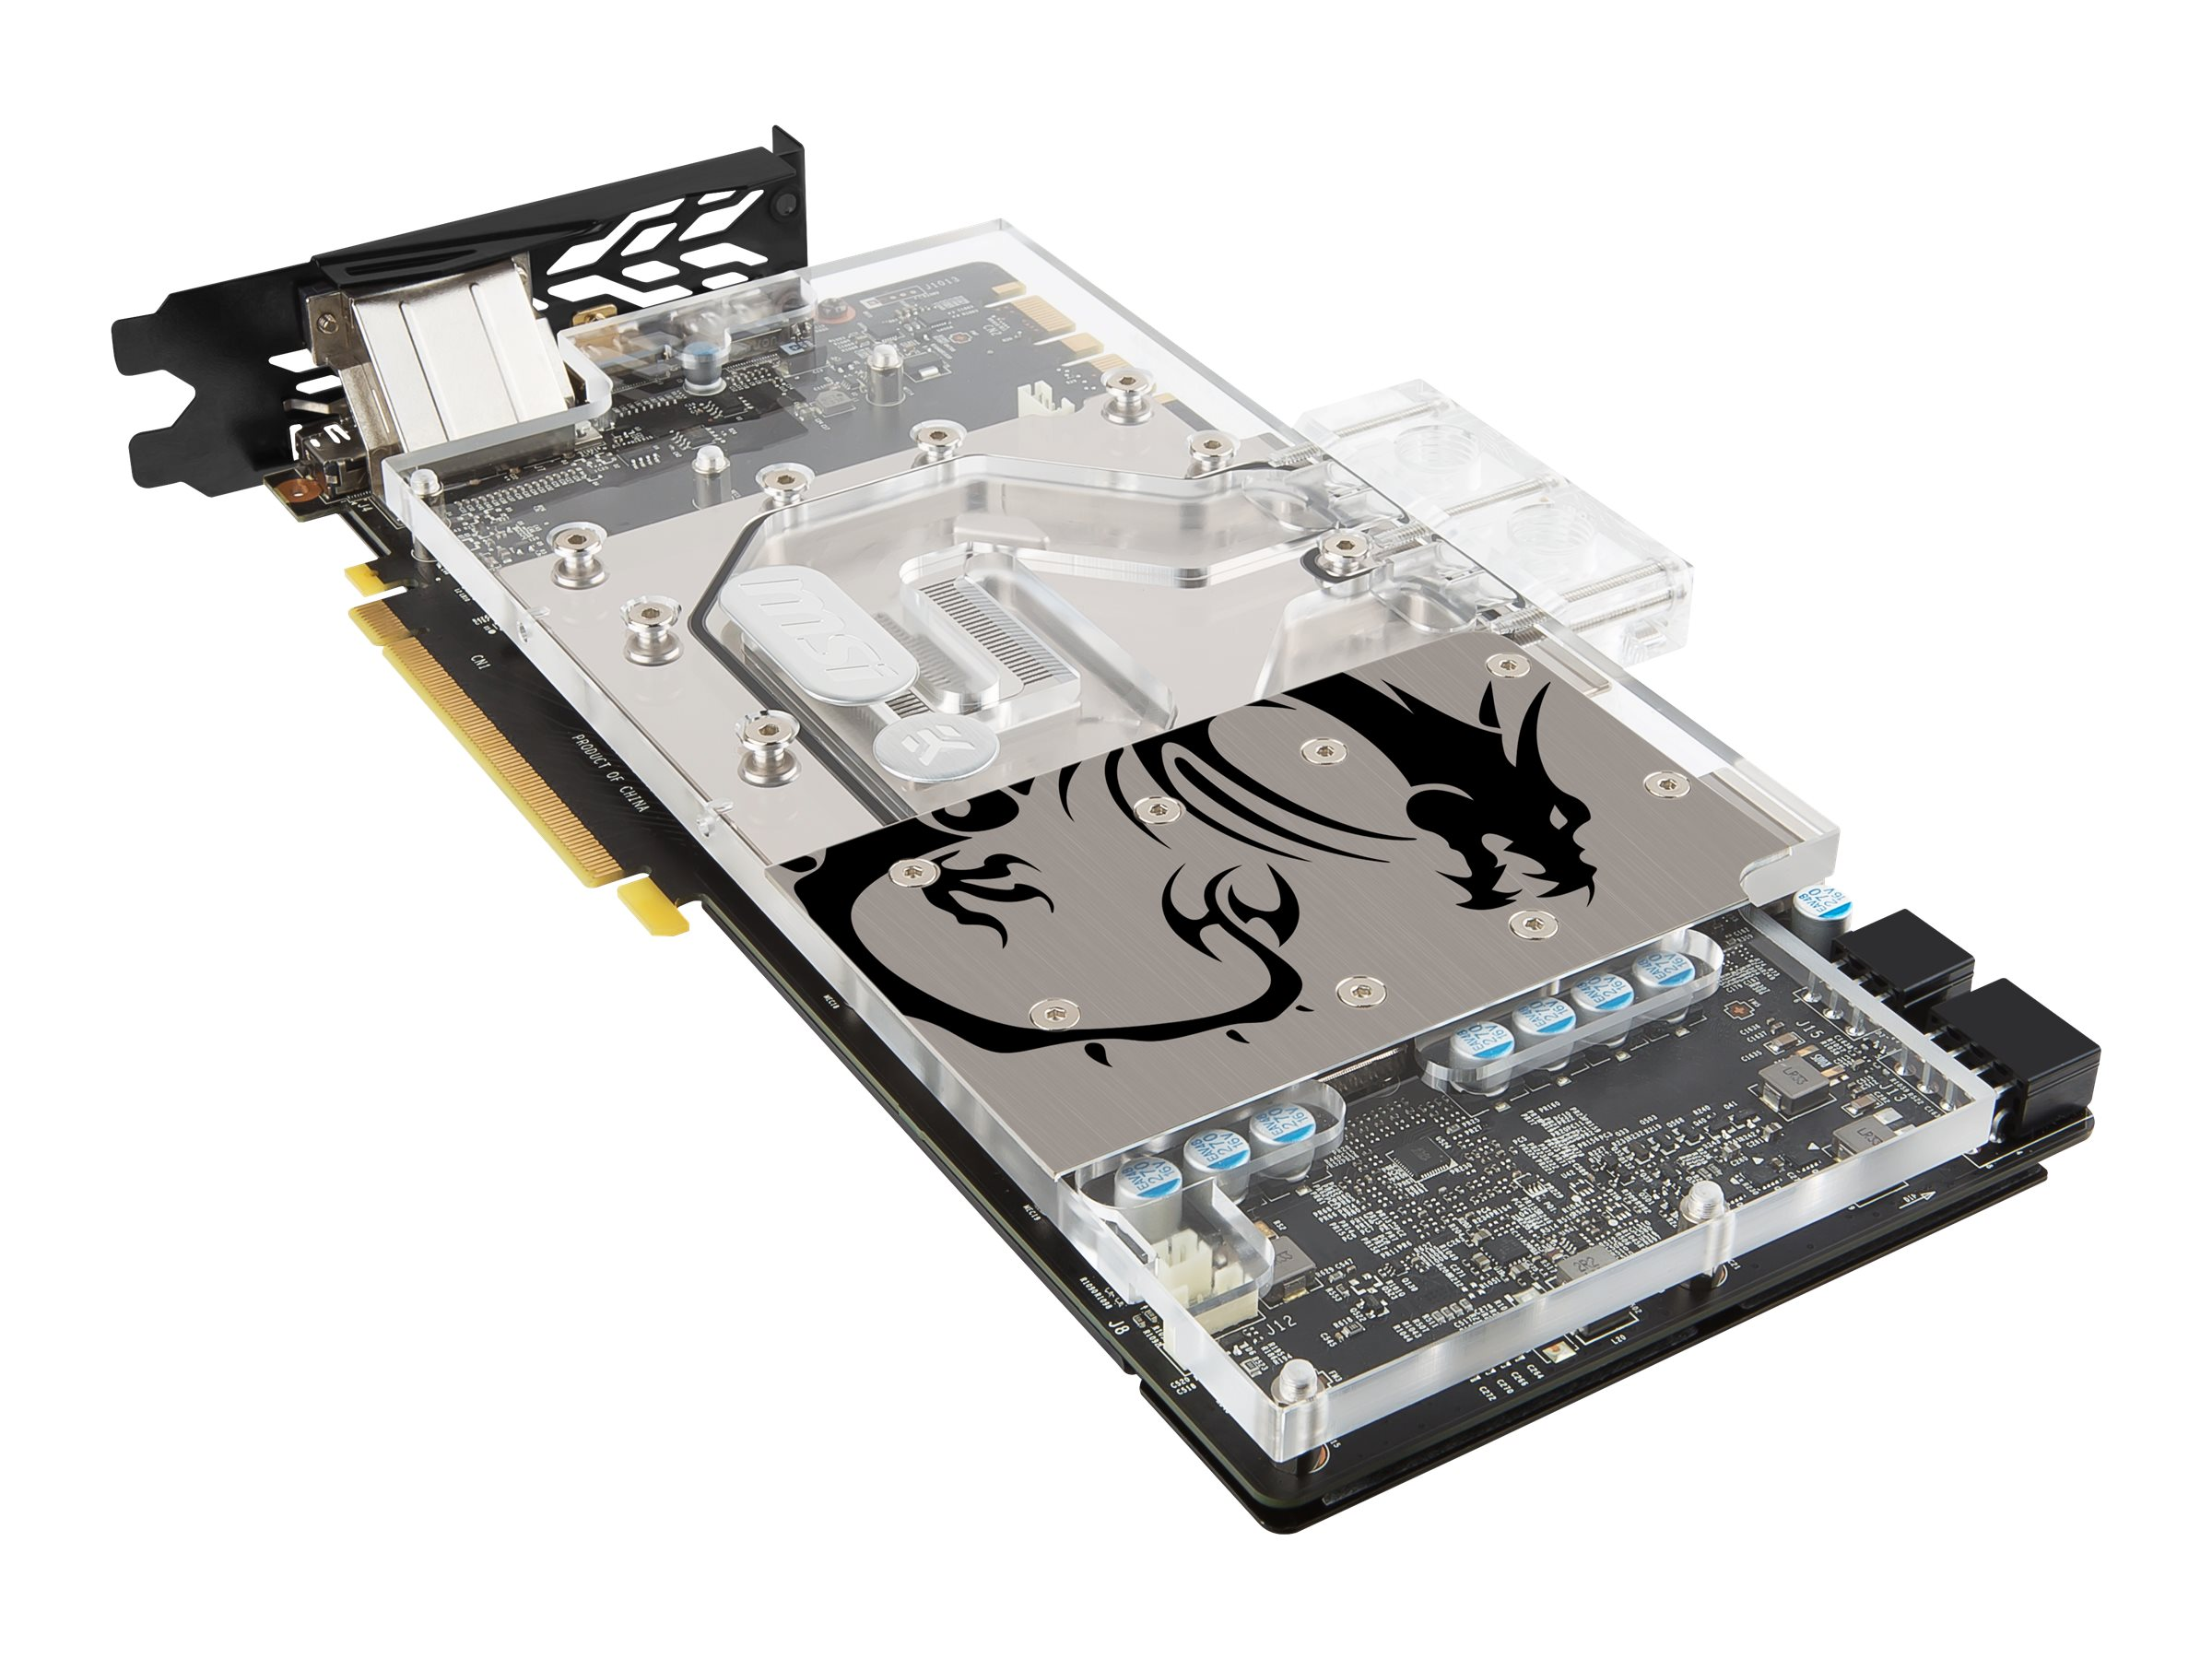 Microstar GeForce GTX 1070 Sea Hawk EK Graphics Card, 8GB GDDR5